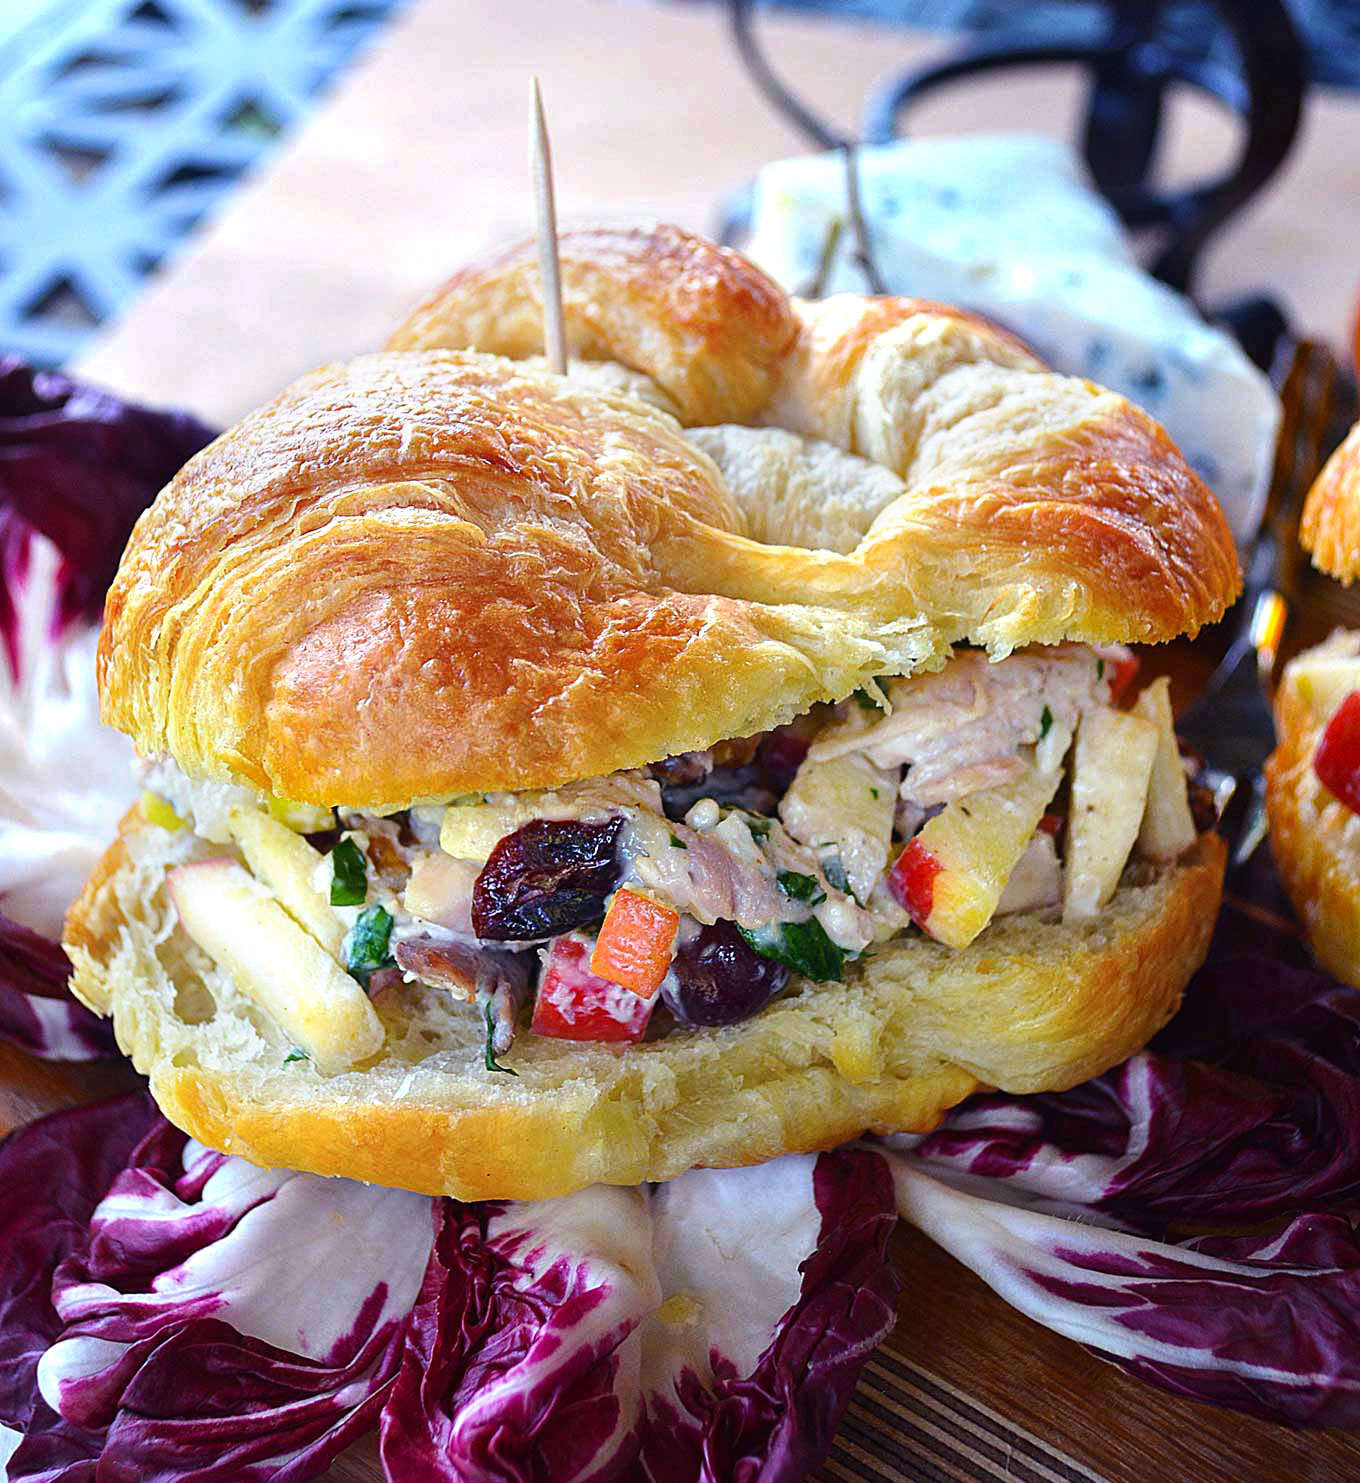 rotisserie chicken & fruit salad croissant sandwiches | rusticplate.com